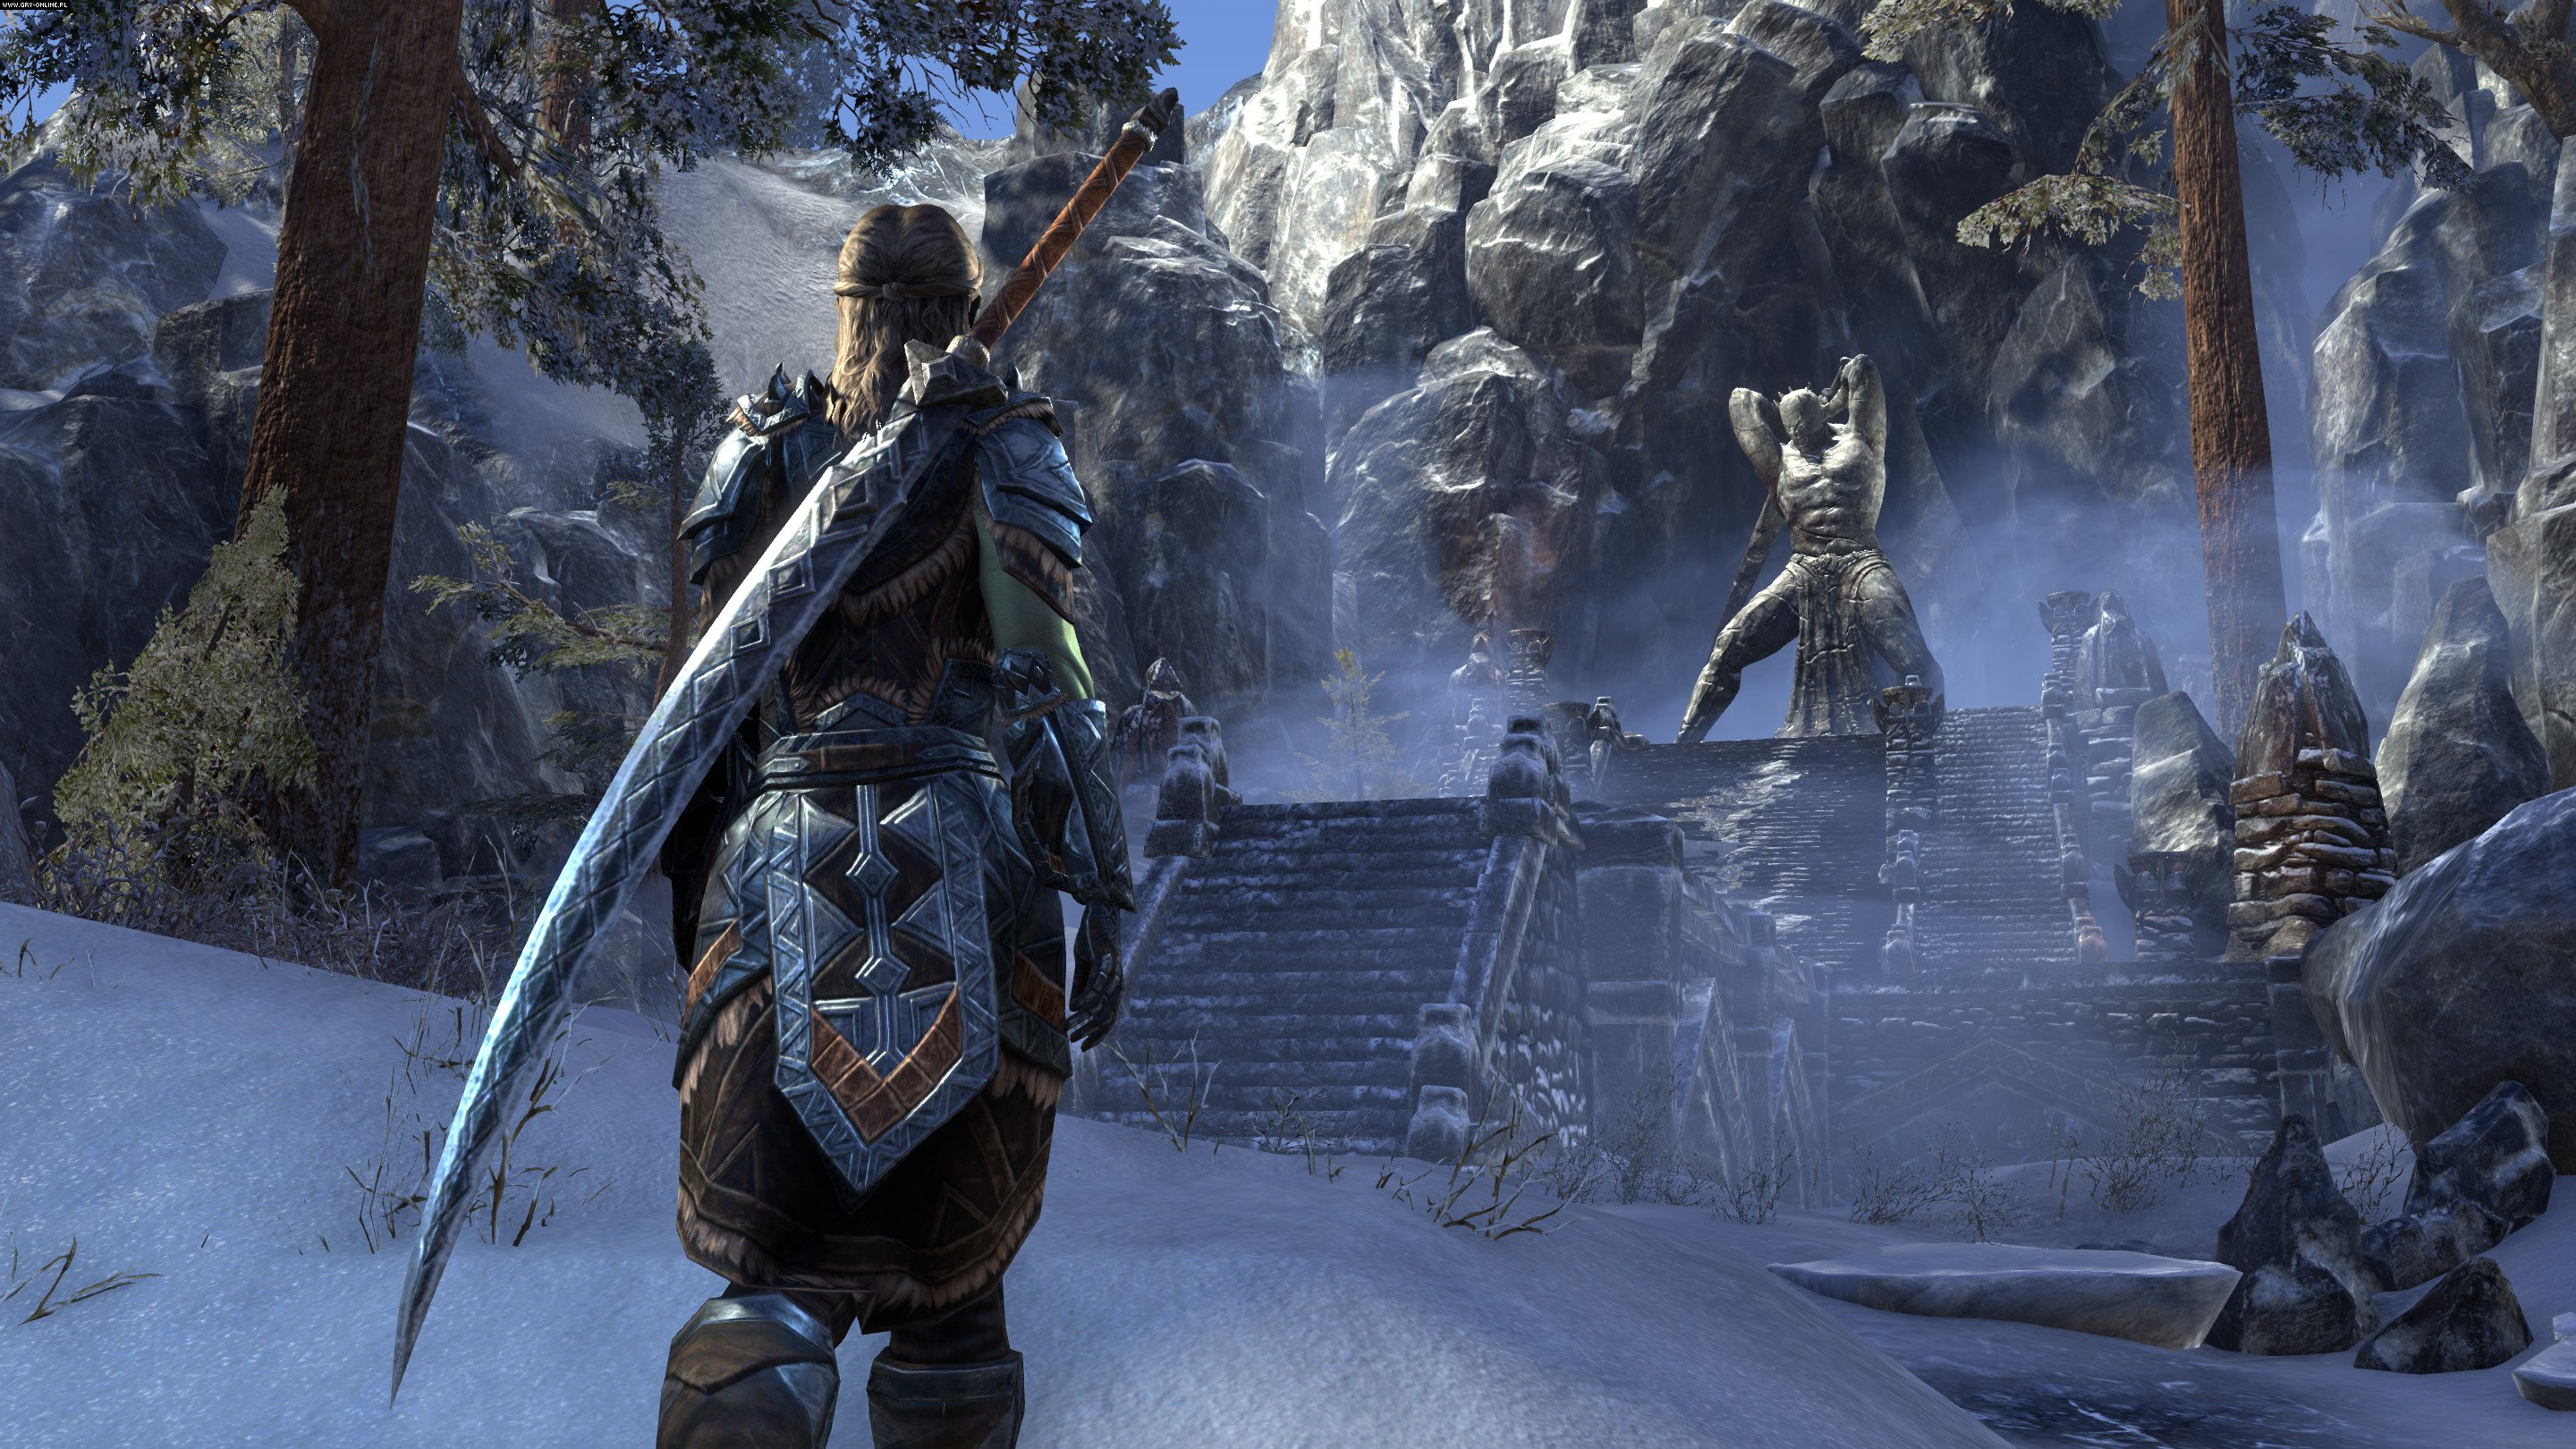 The Elder Scrolls Online: Tamriel Unlimited PC, PS4, XONE Games Image 19/104, ZeniMax Online Studios, Bethesda Softworks